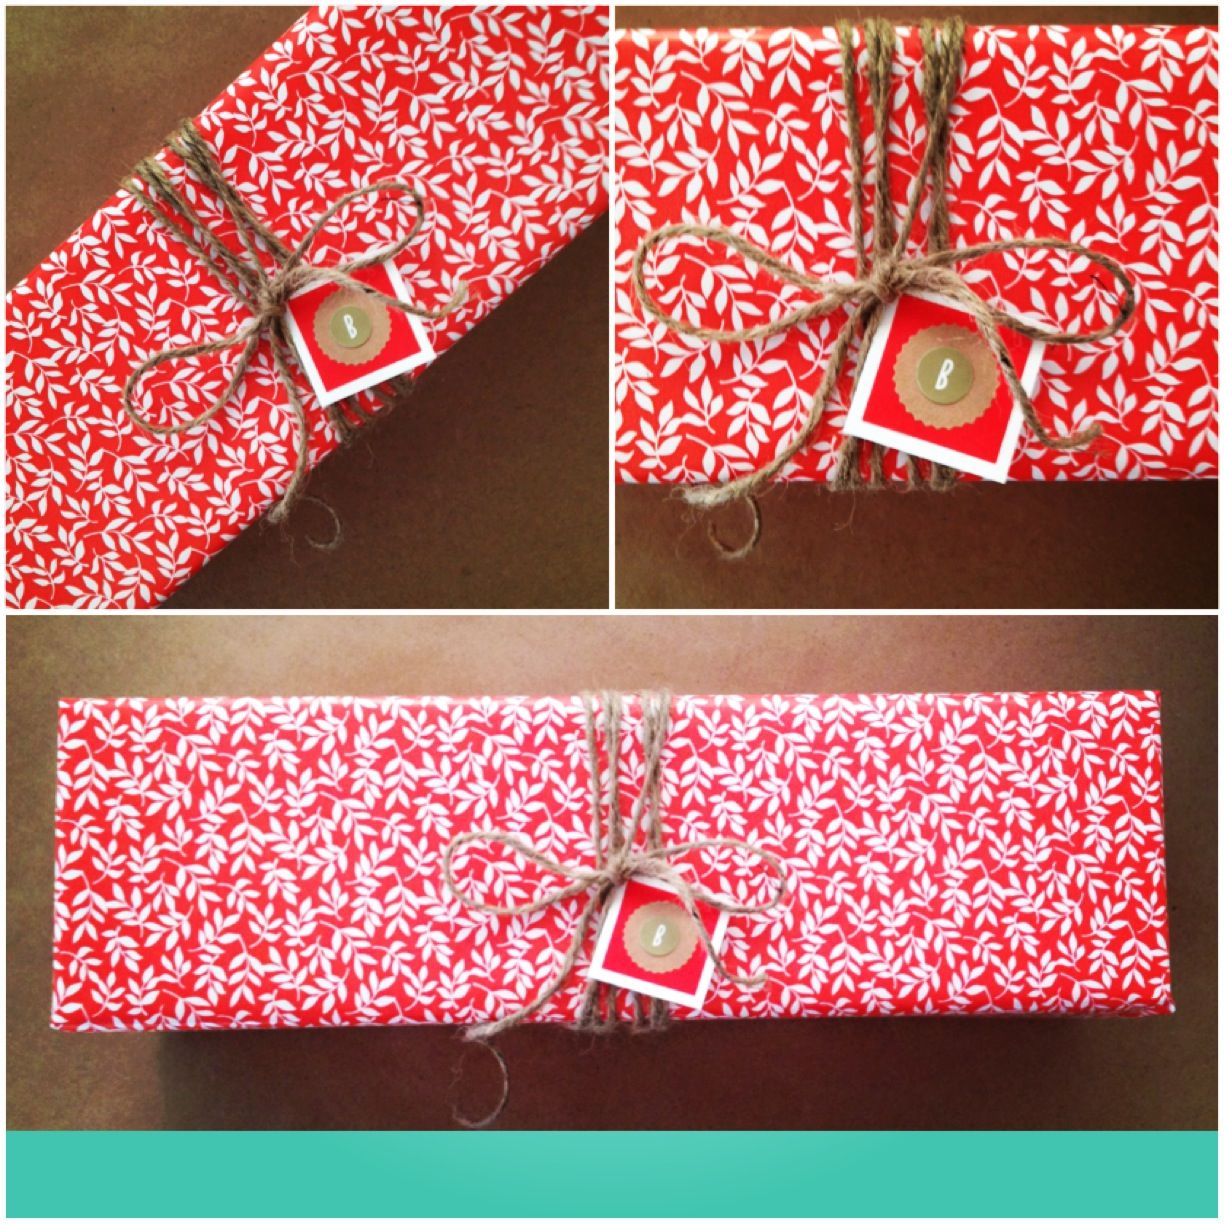 Floral gift wrapping paper brand nicole miller wrapped by